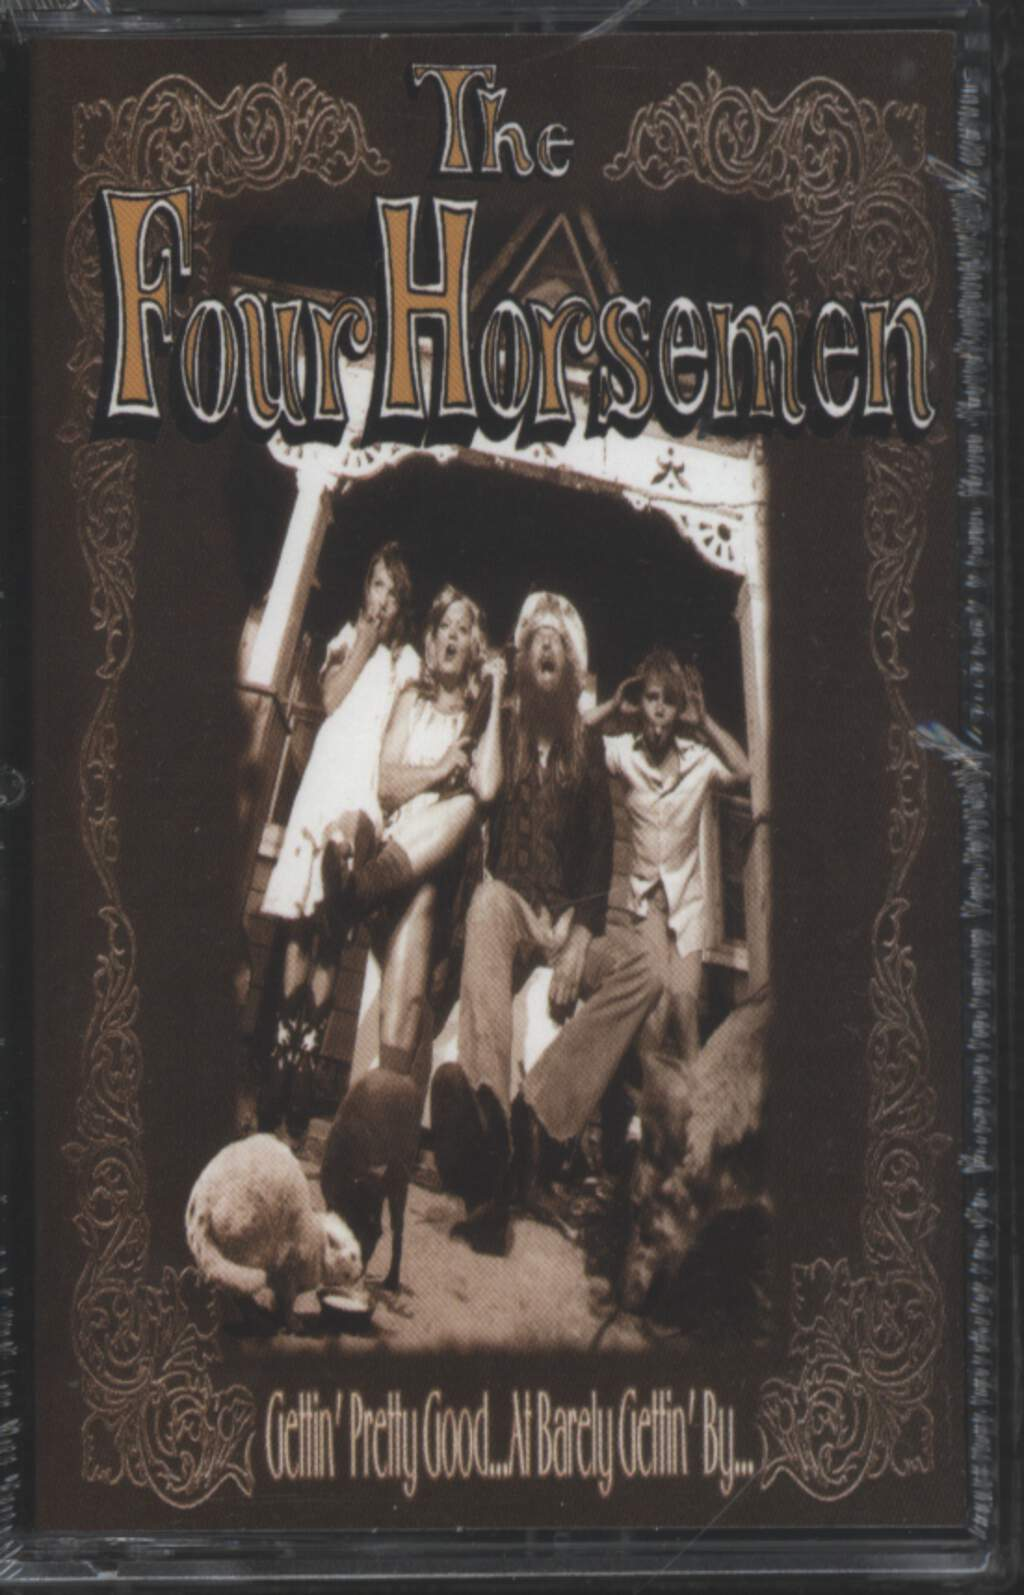 The Four Horsemen: Gettin' Pretty Good... At Barely Gettin' By..., Tape